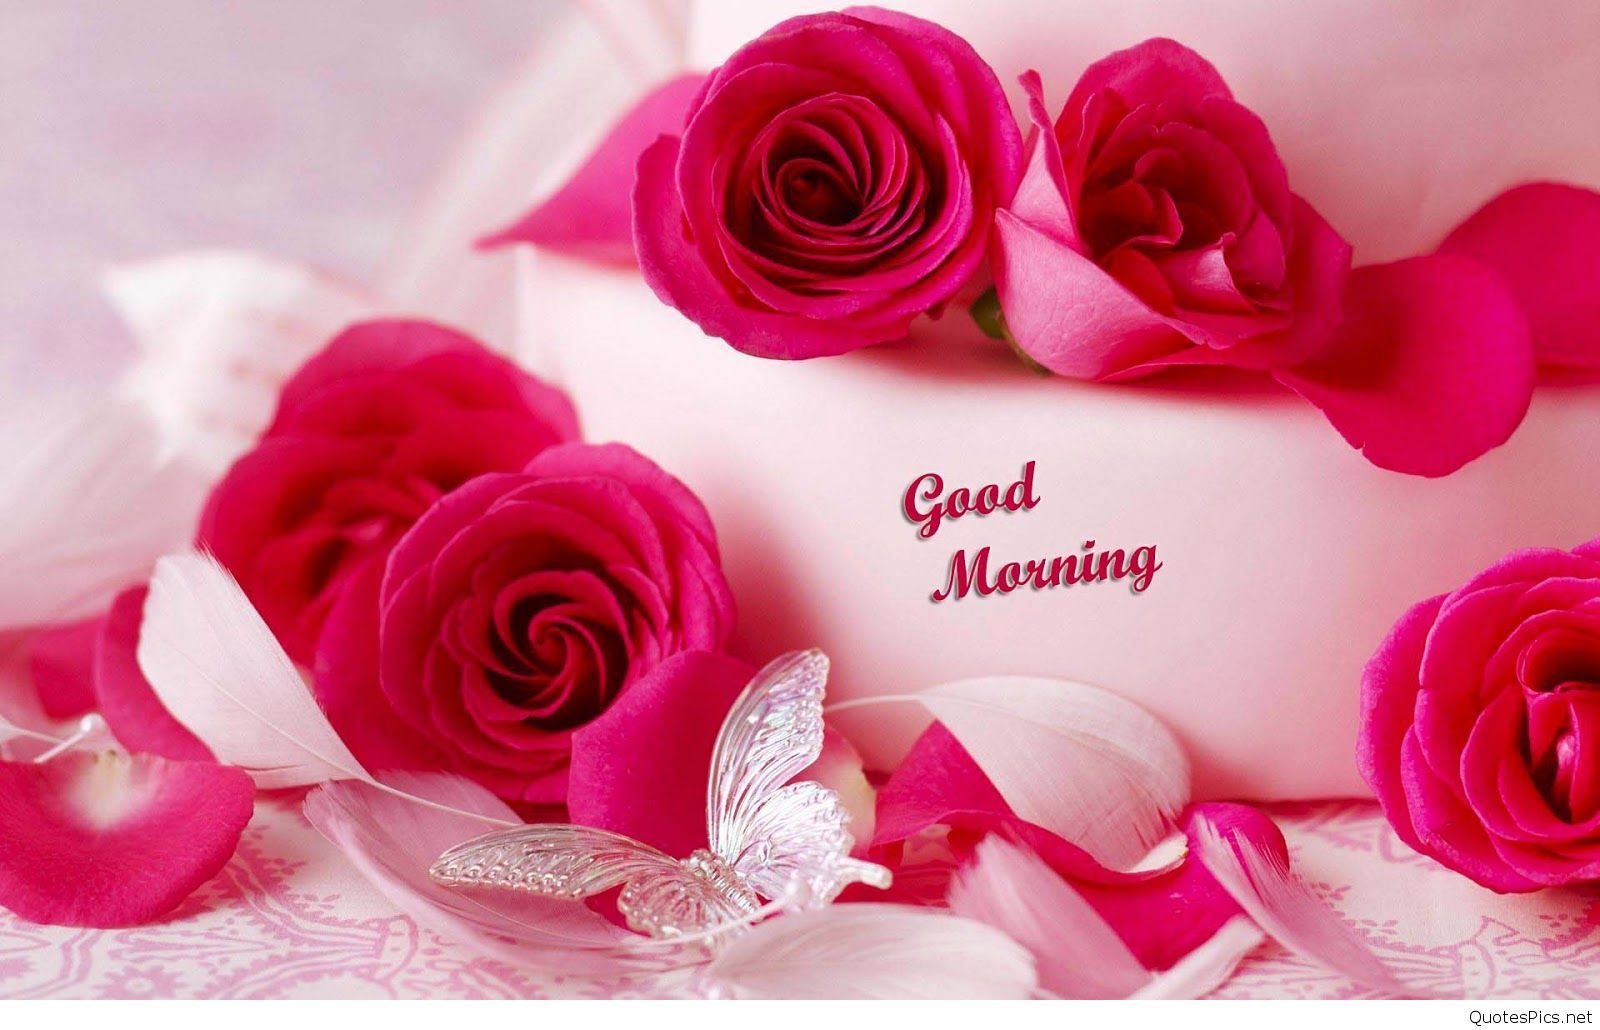 Beautiful good morning roses 2016 quotespics pinterest beautiful flowers pictures for desktop pictures of flowers izmirmasajfo Gallery